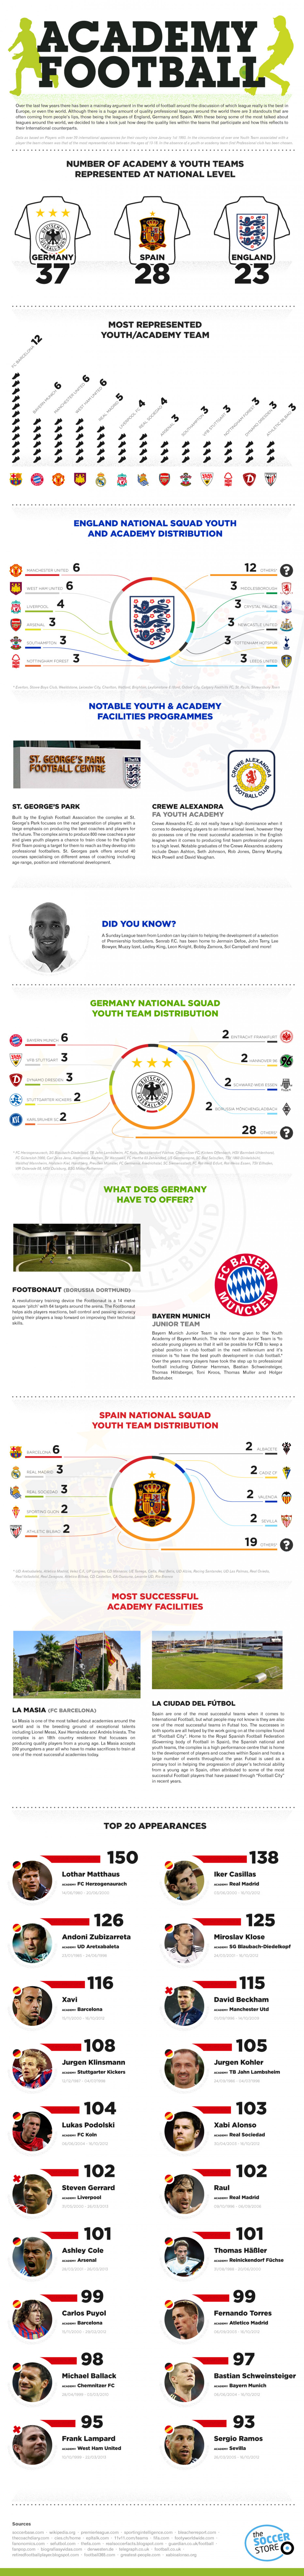 Academy Football in Europe Infographic